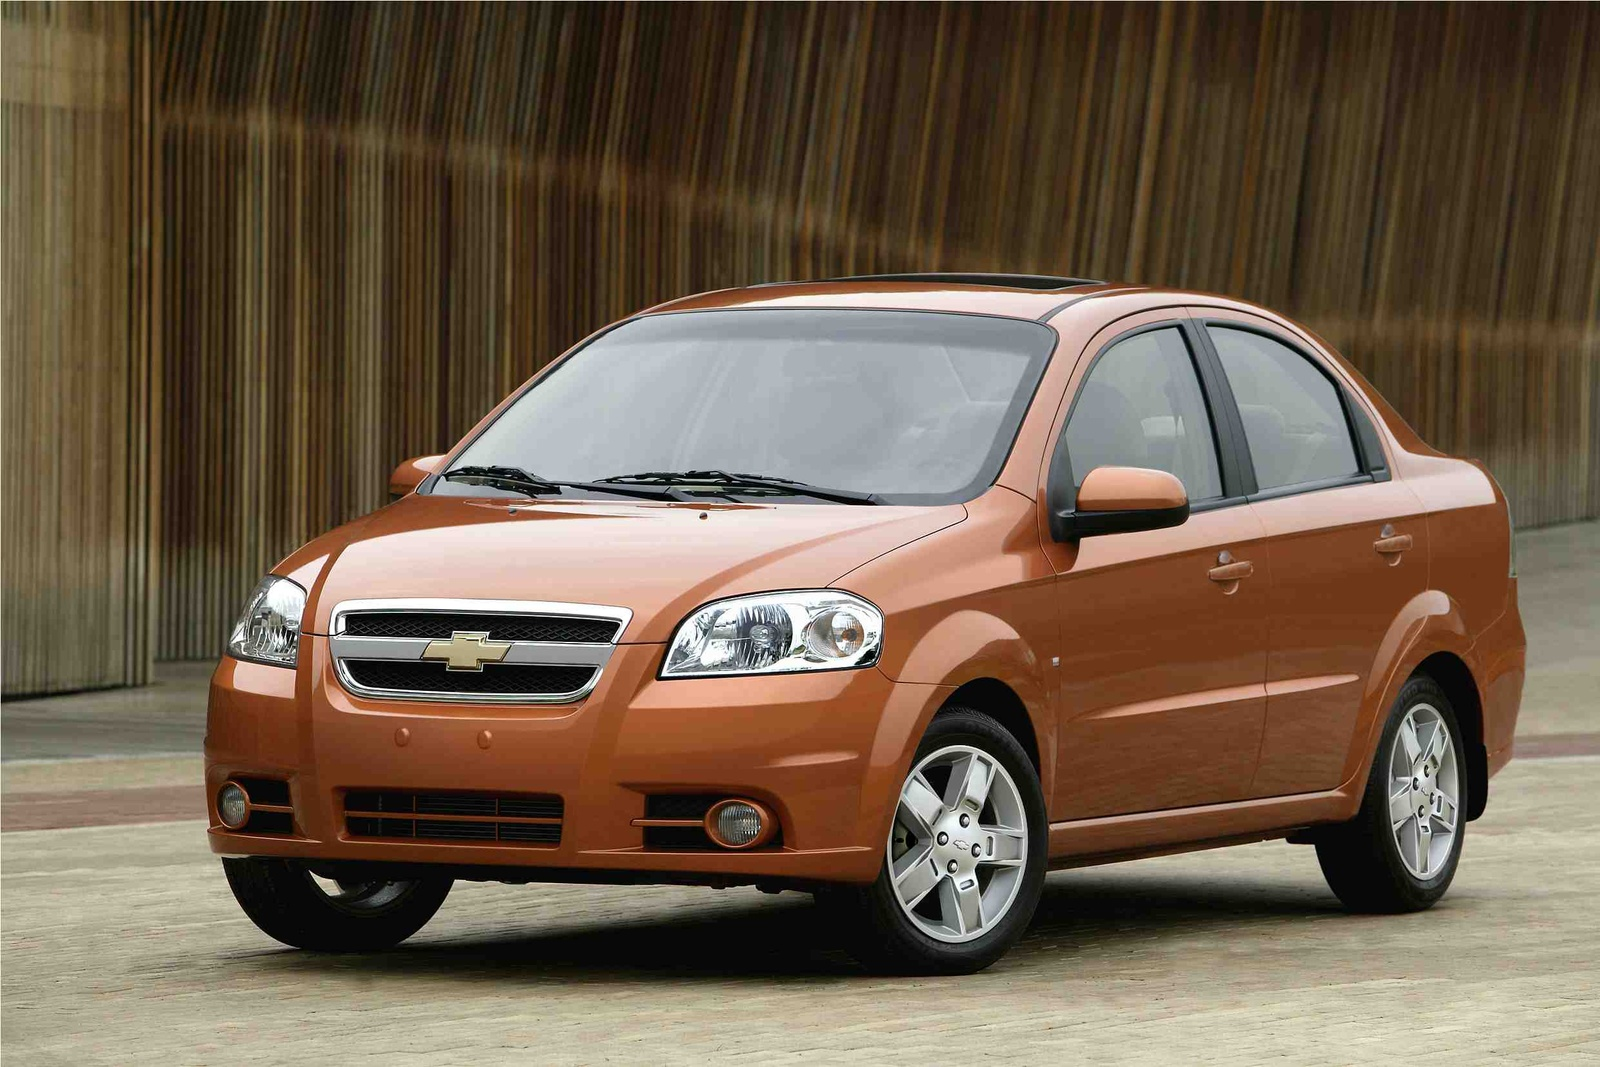 Pictures of chevrolet aveo 2010 #1